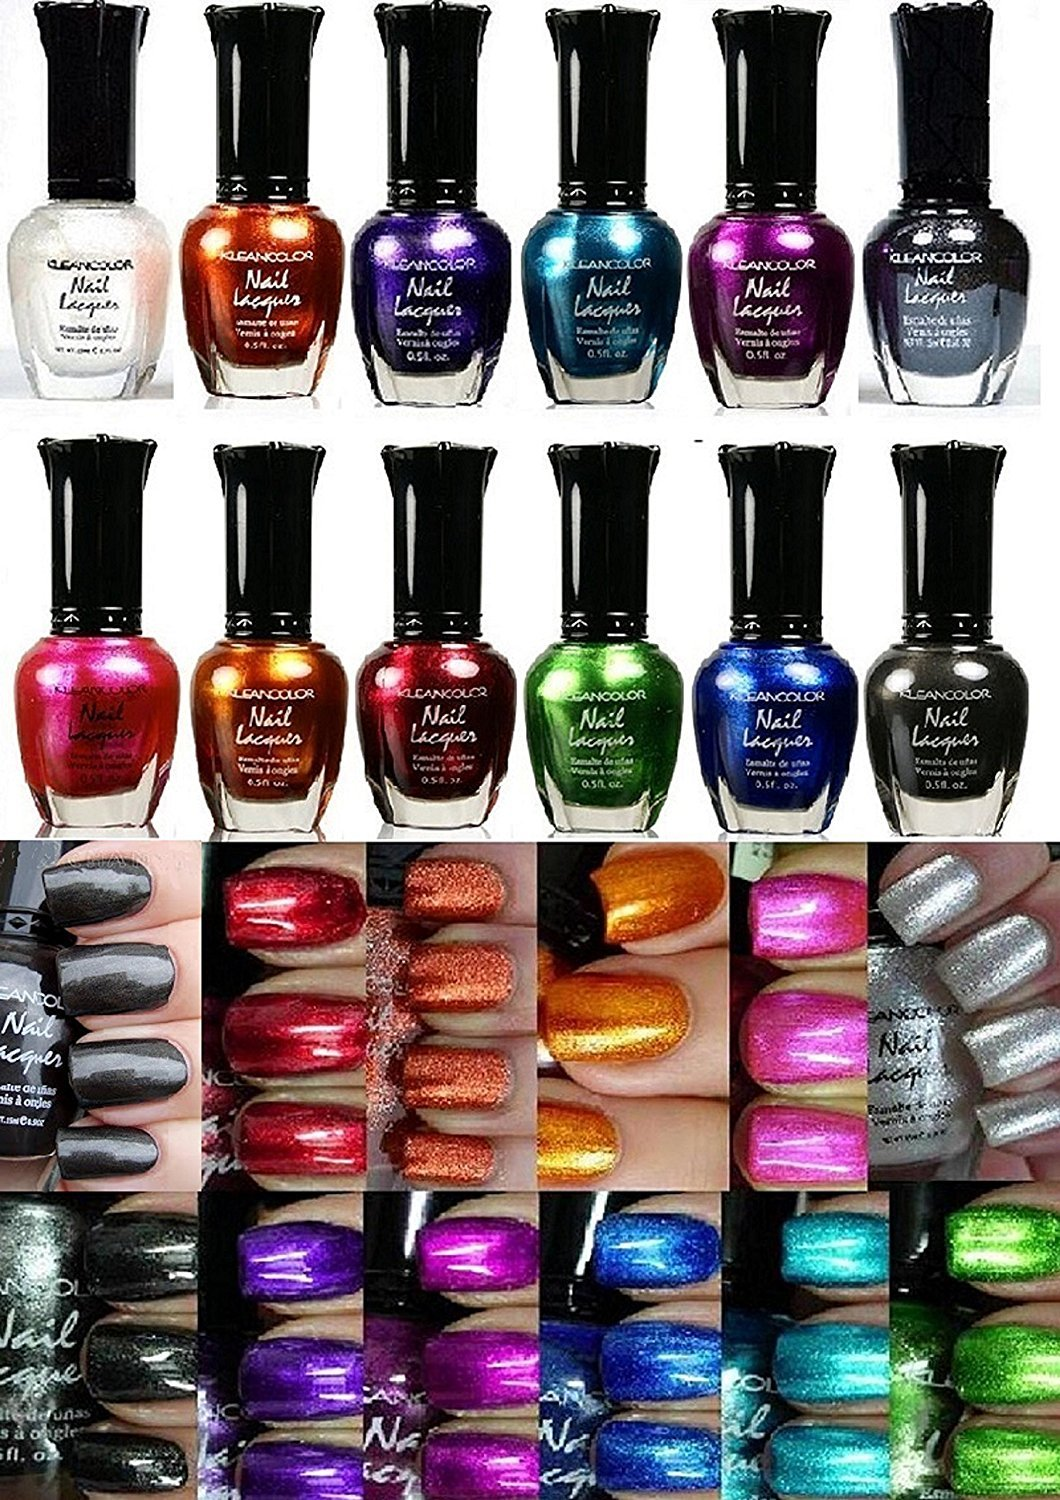 Amazon.com : KLEANCOLOR NEON COLORS 12 FULL COLLETION SET NAIL ...